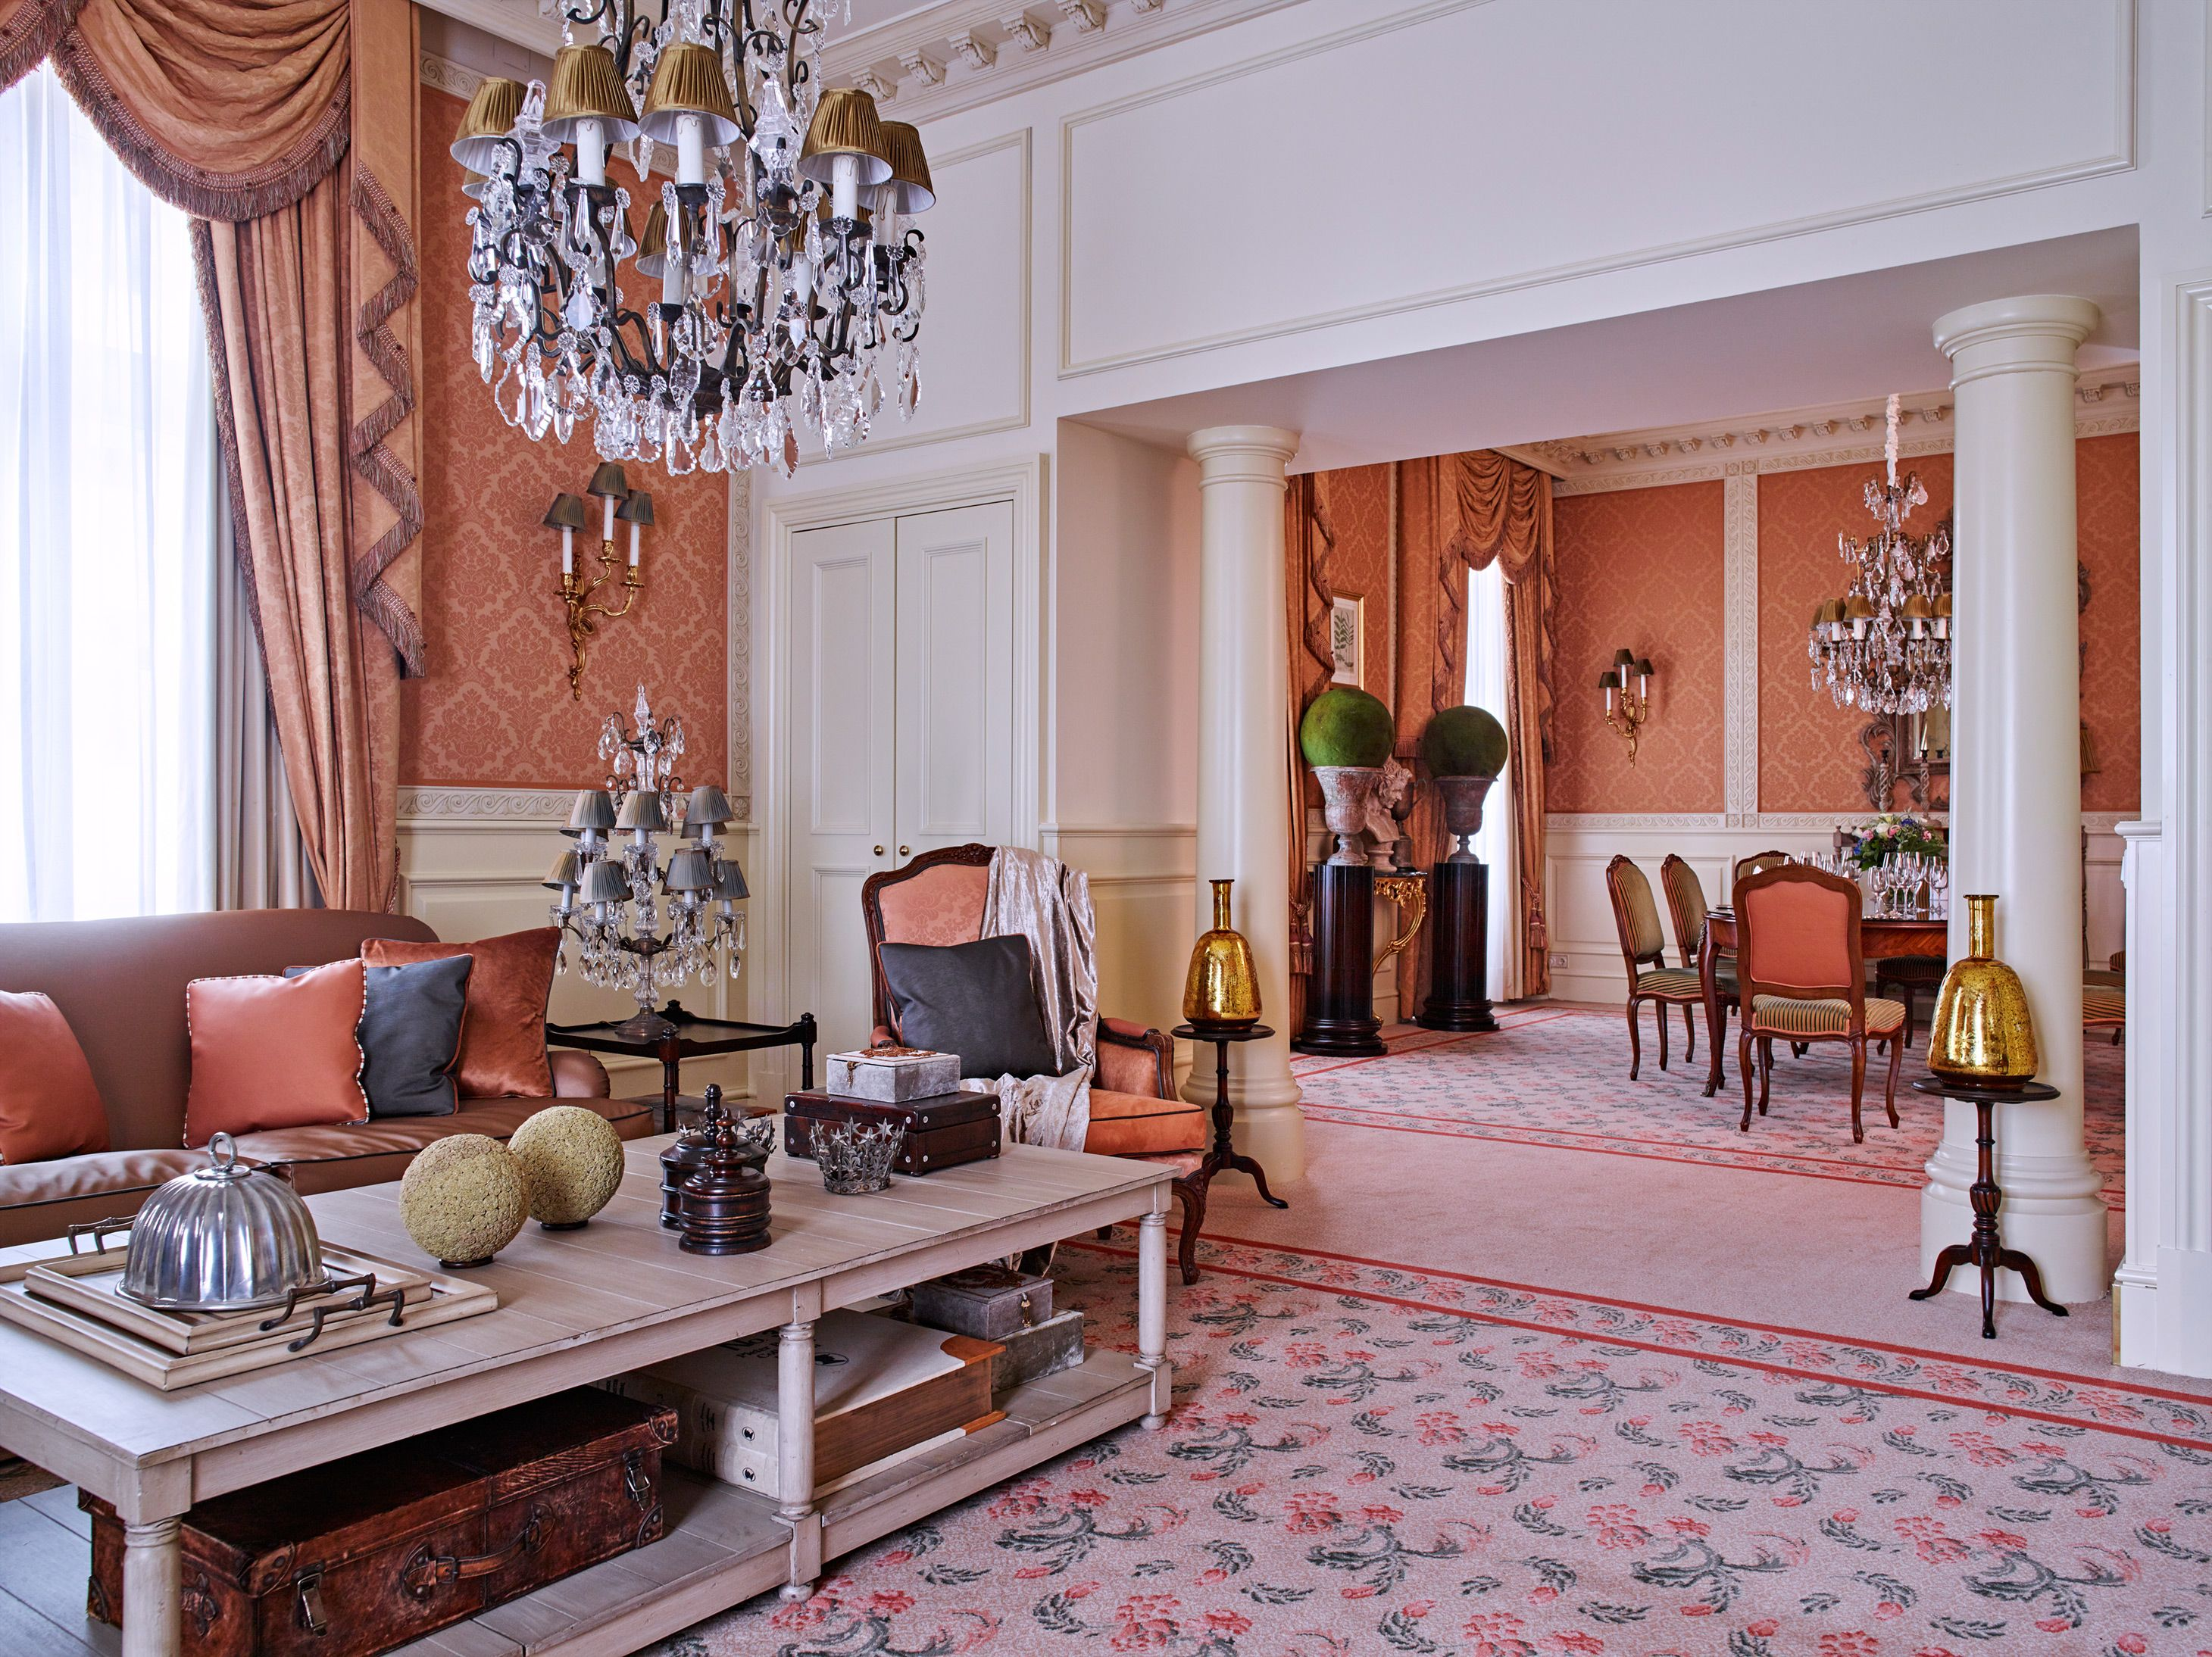 Meeting and event spaces at hilton austria hotels vienna and - Grand Hotel Wien Vienna Austria Luxpitality